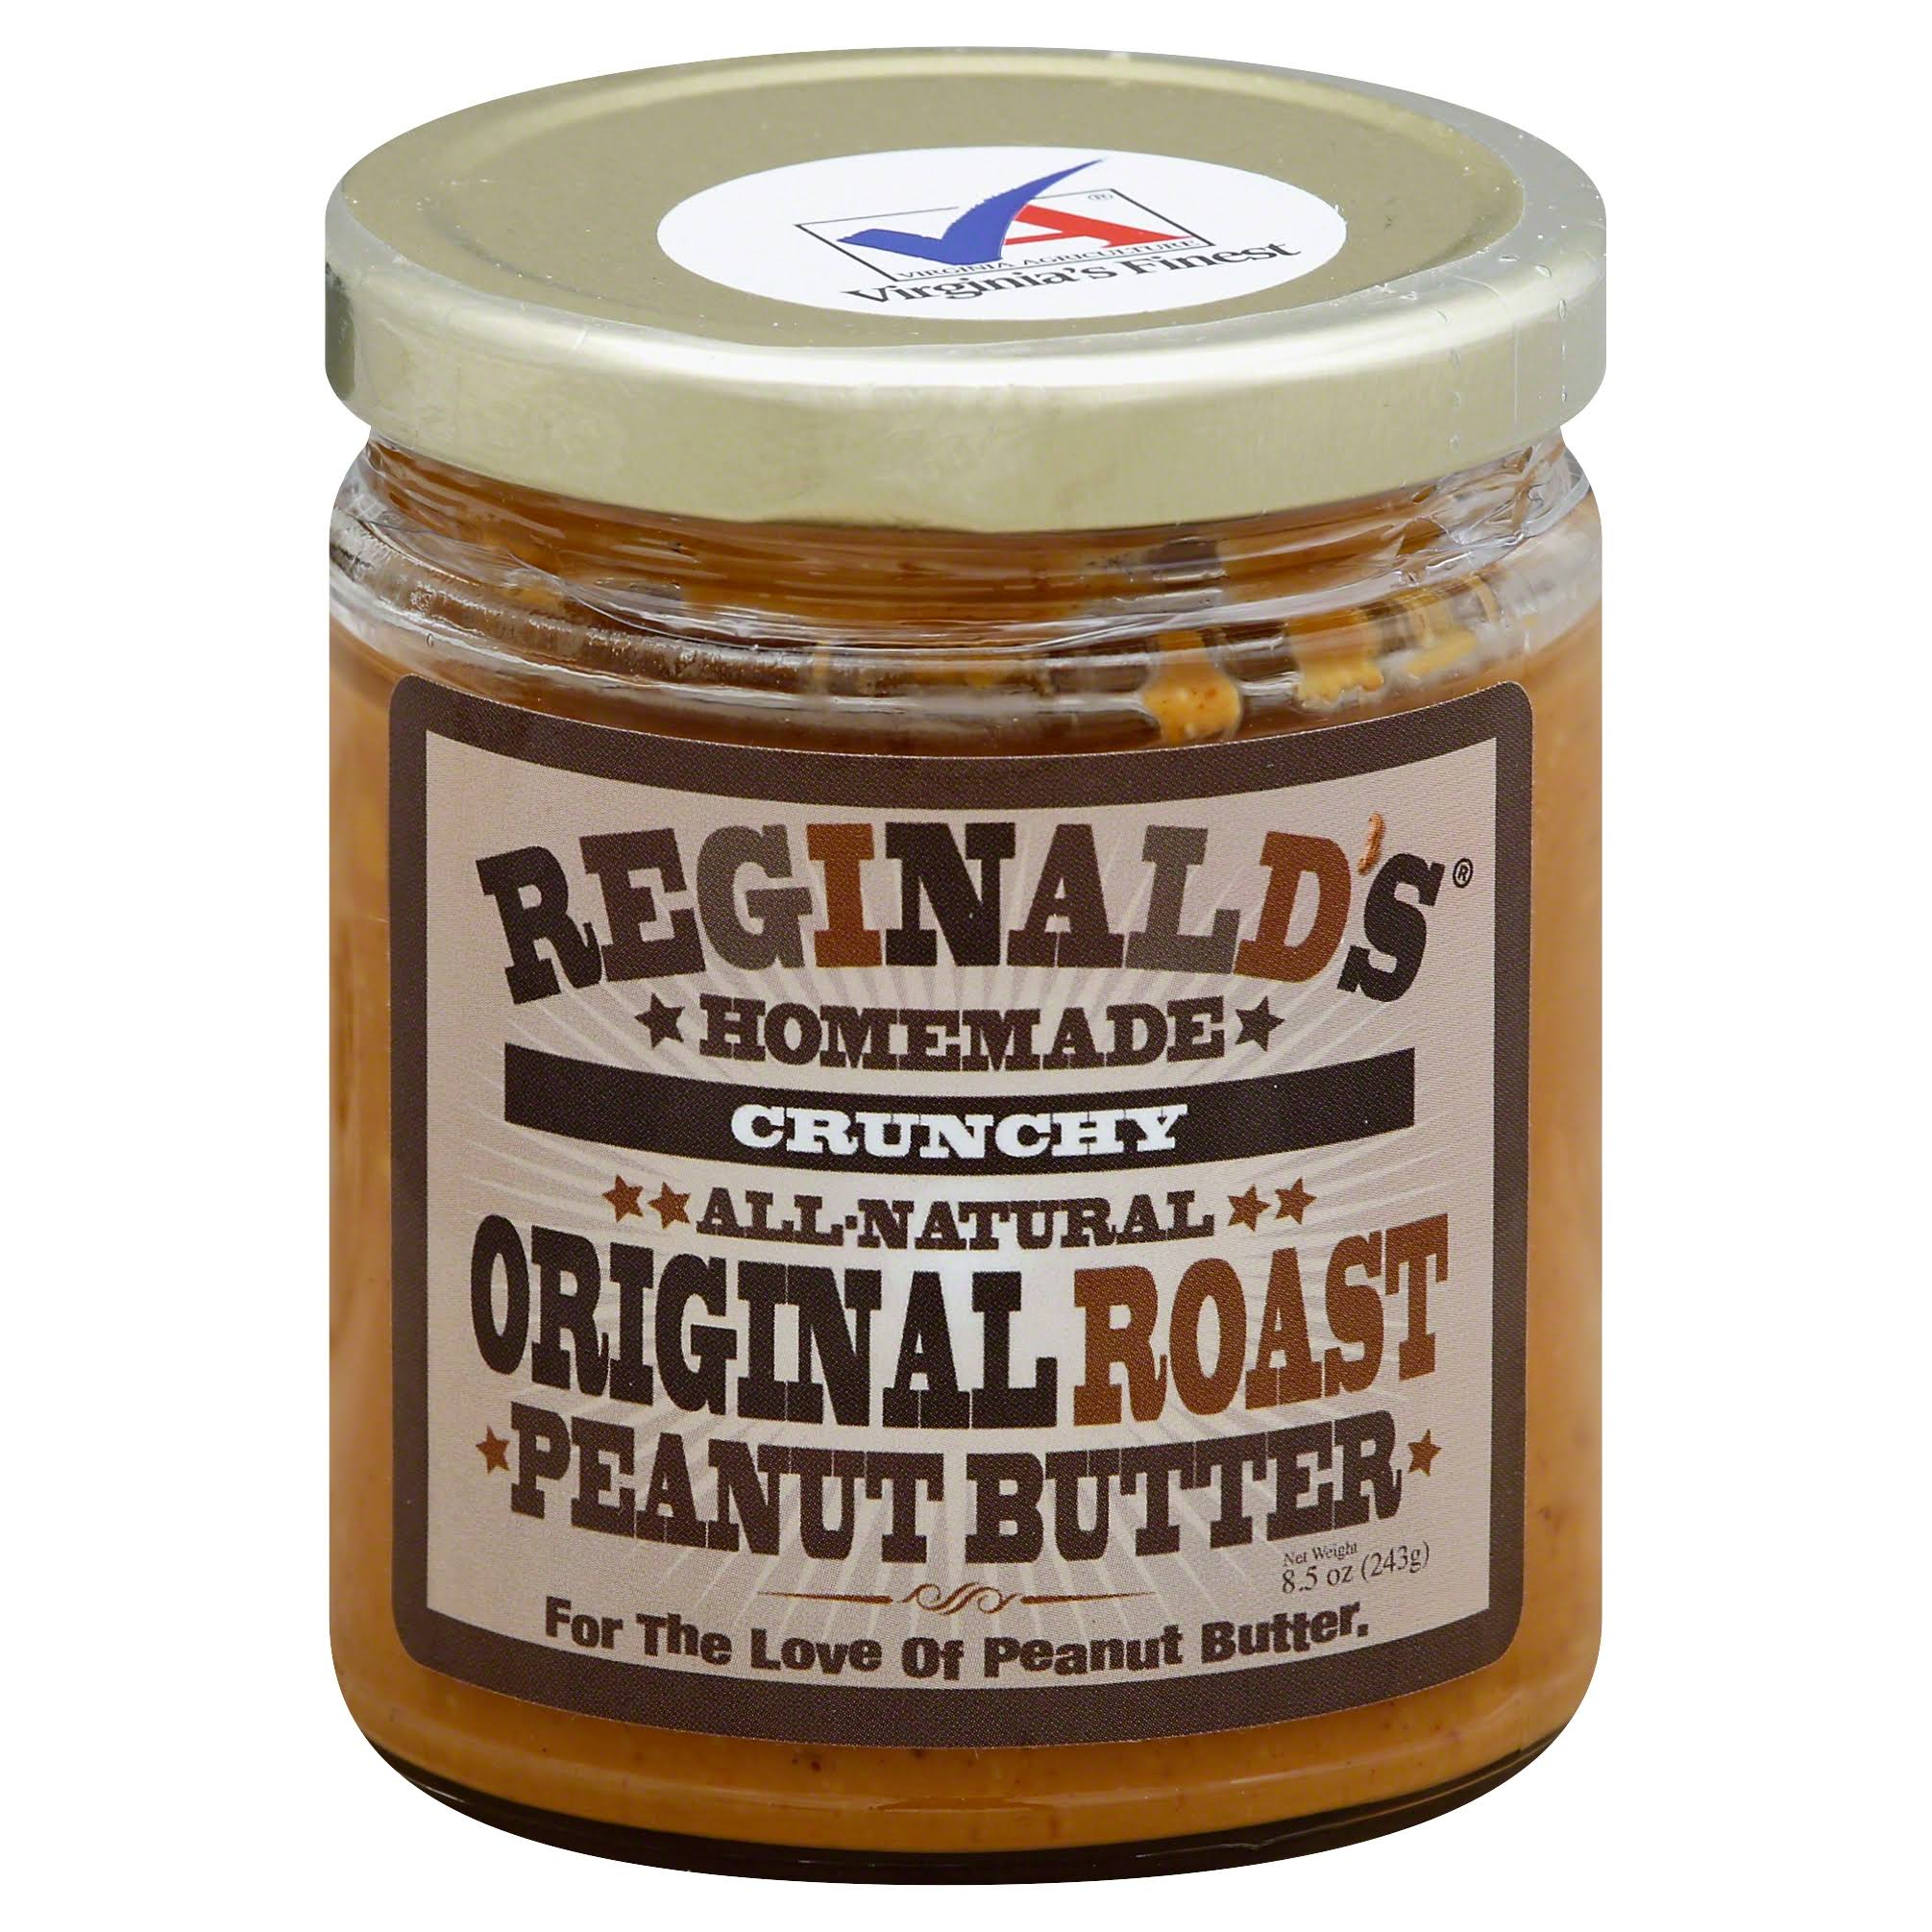 Reginalds Homemade Peanut Butter, Crunchy, Original Roast - 8.5 oz